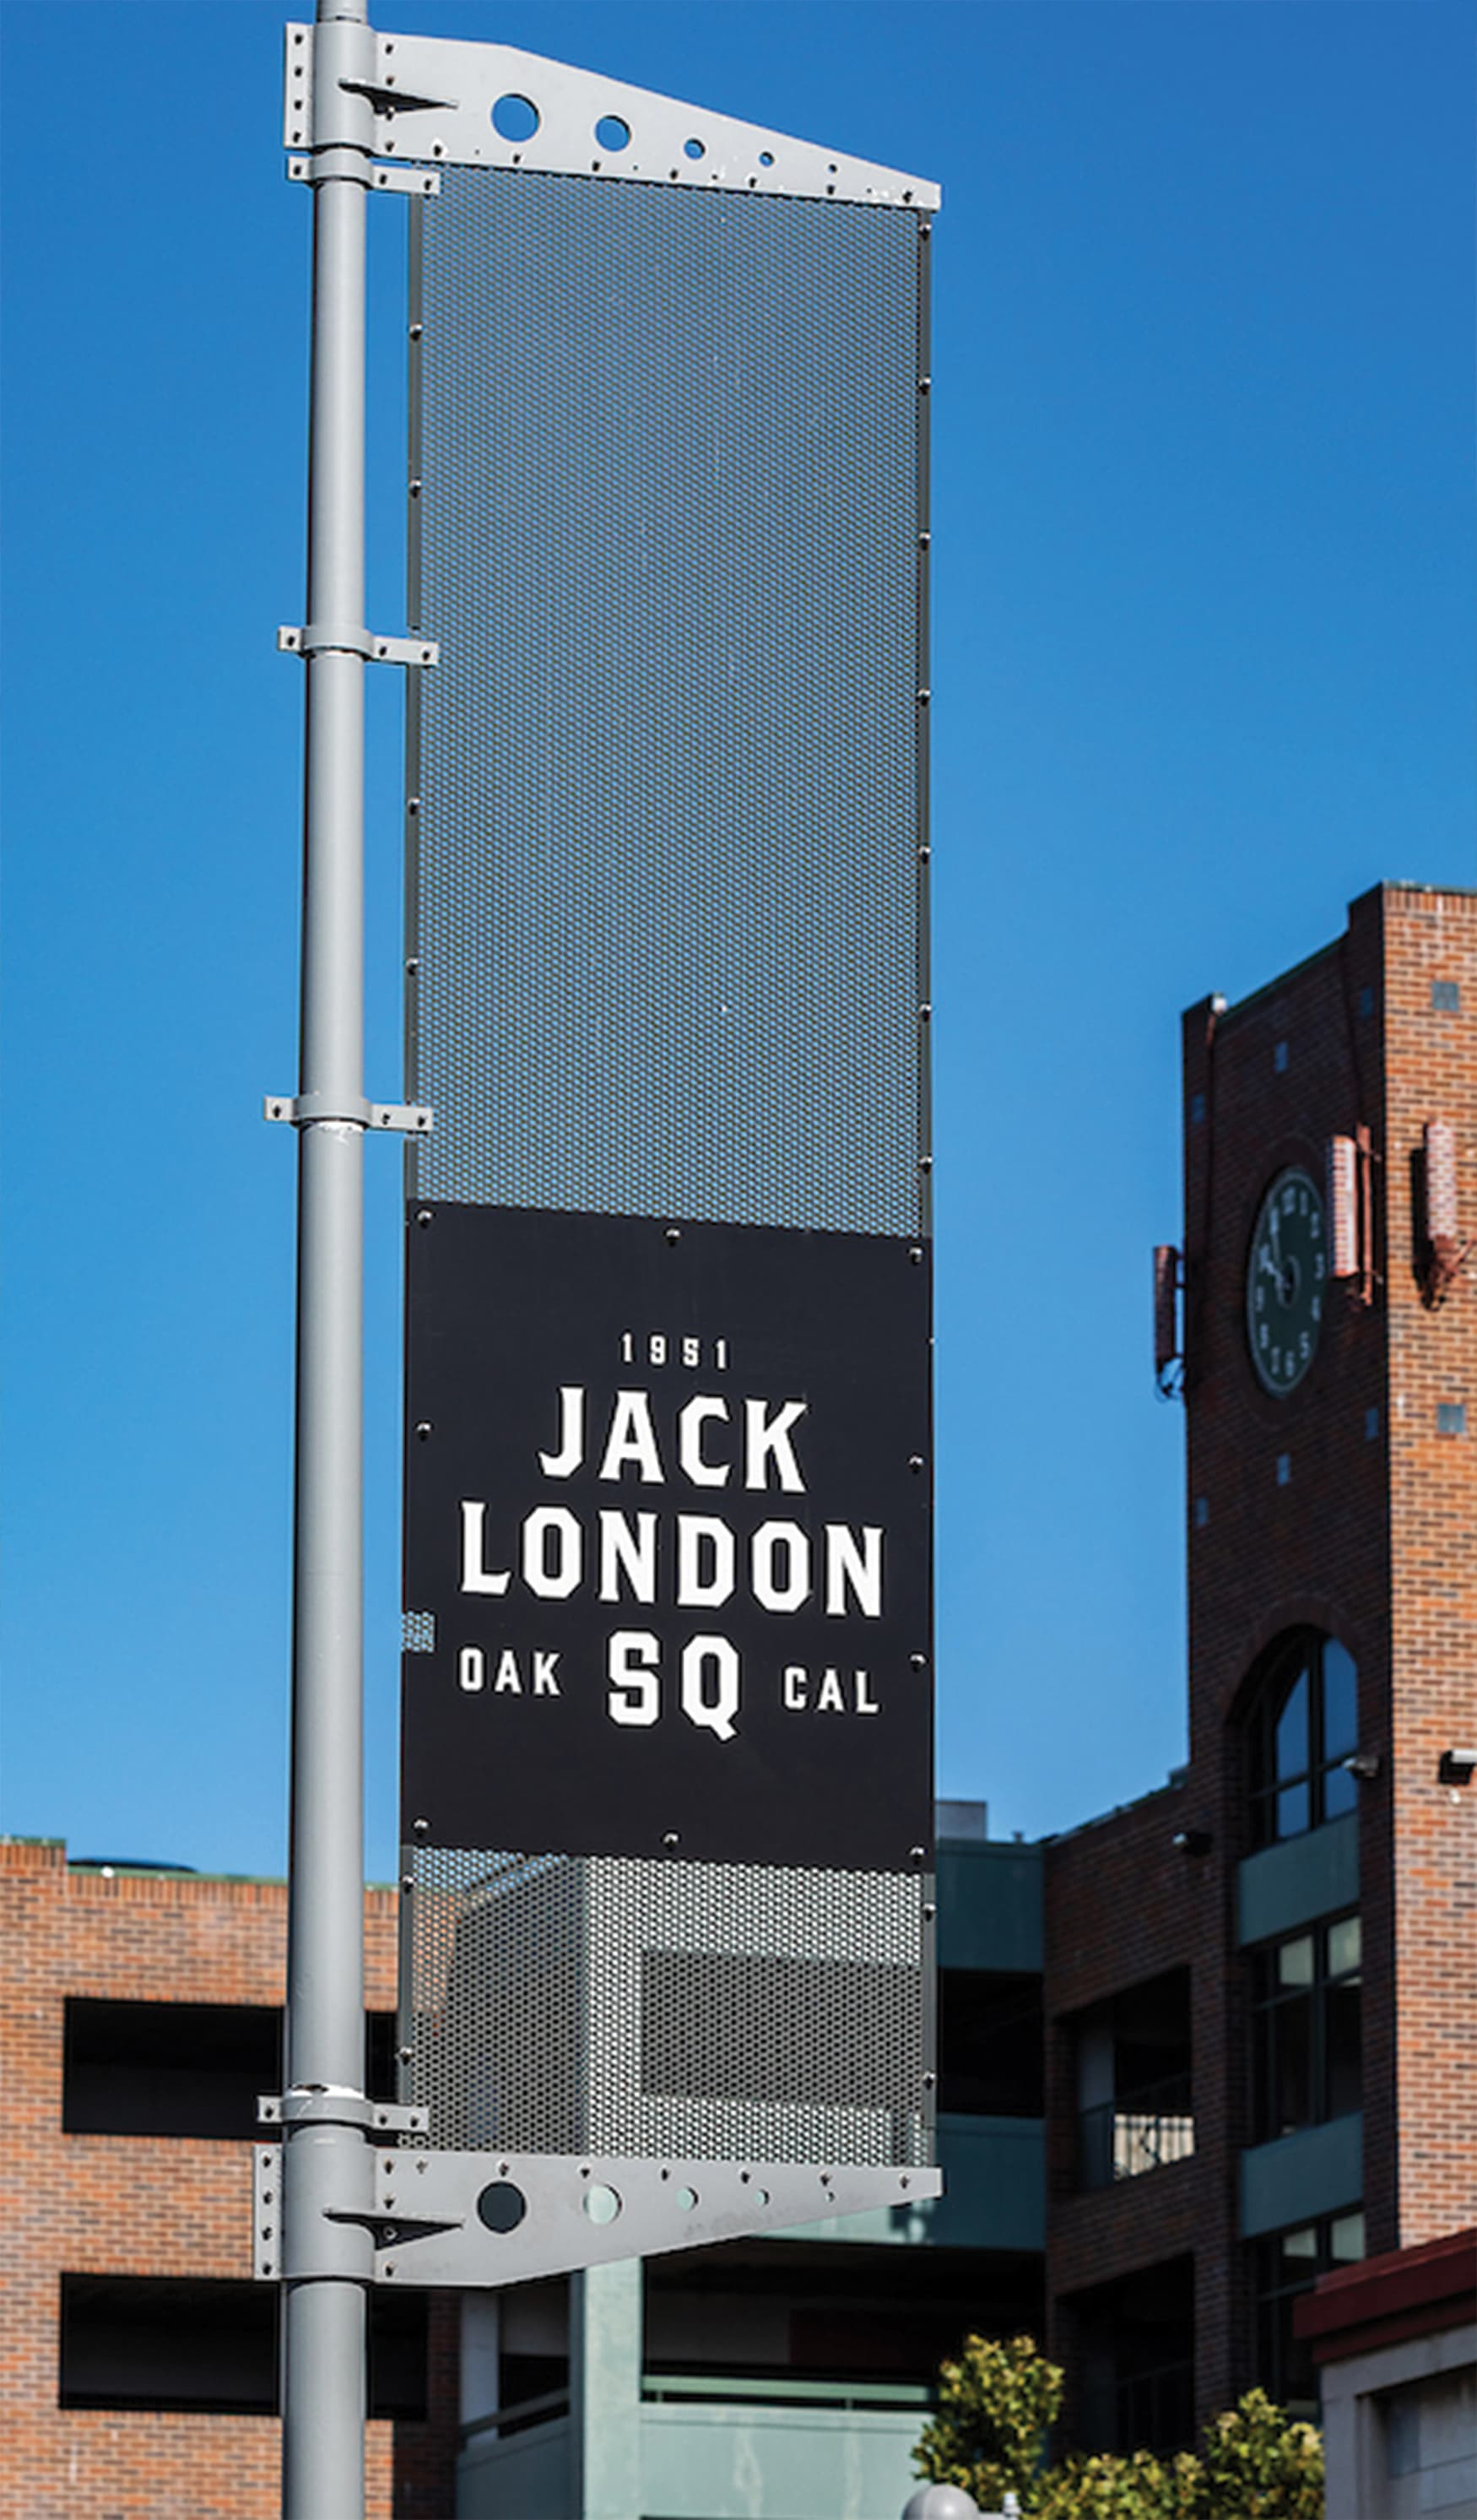 Jack London Square placemaking elements and identity signage.